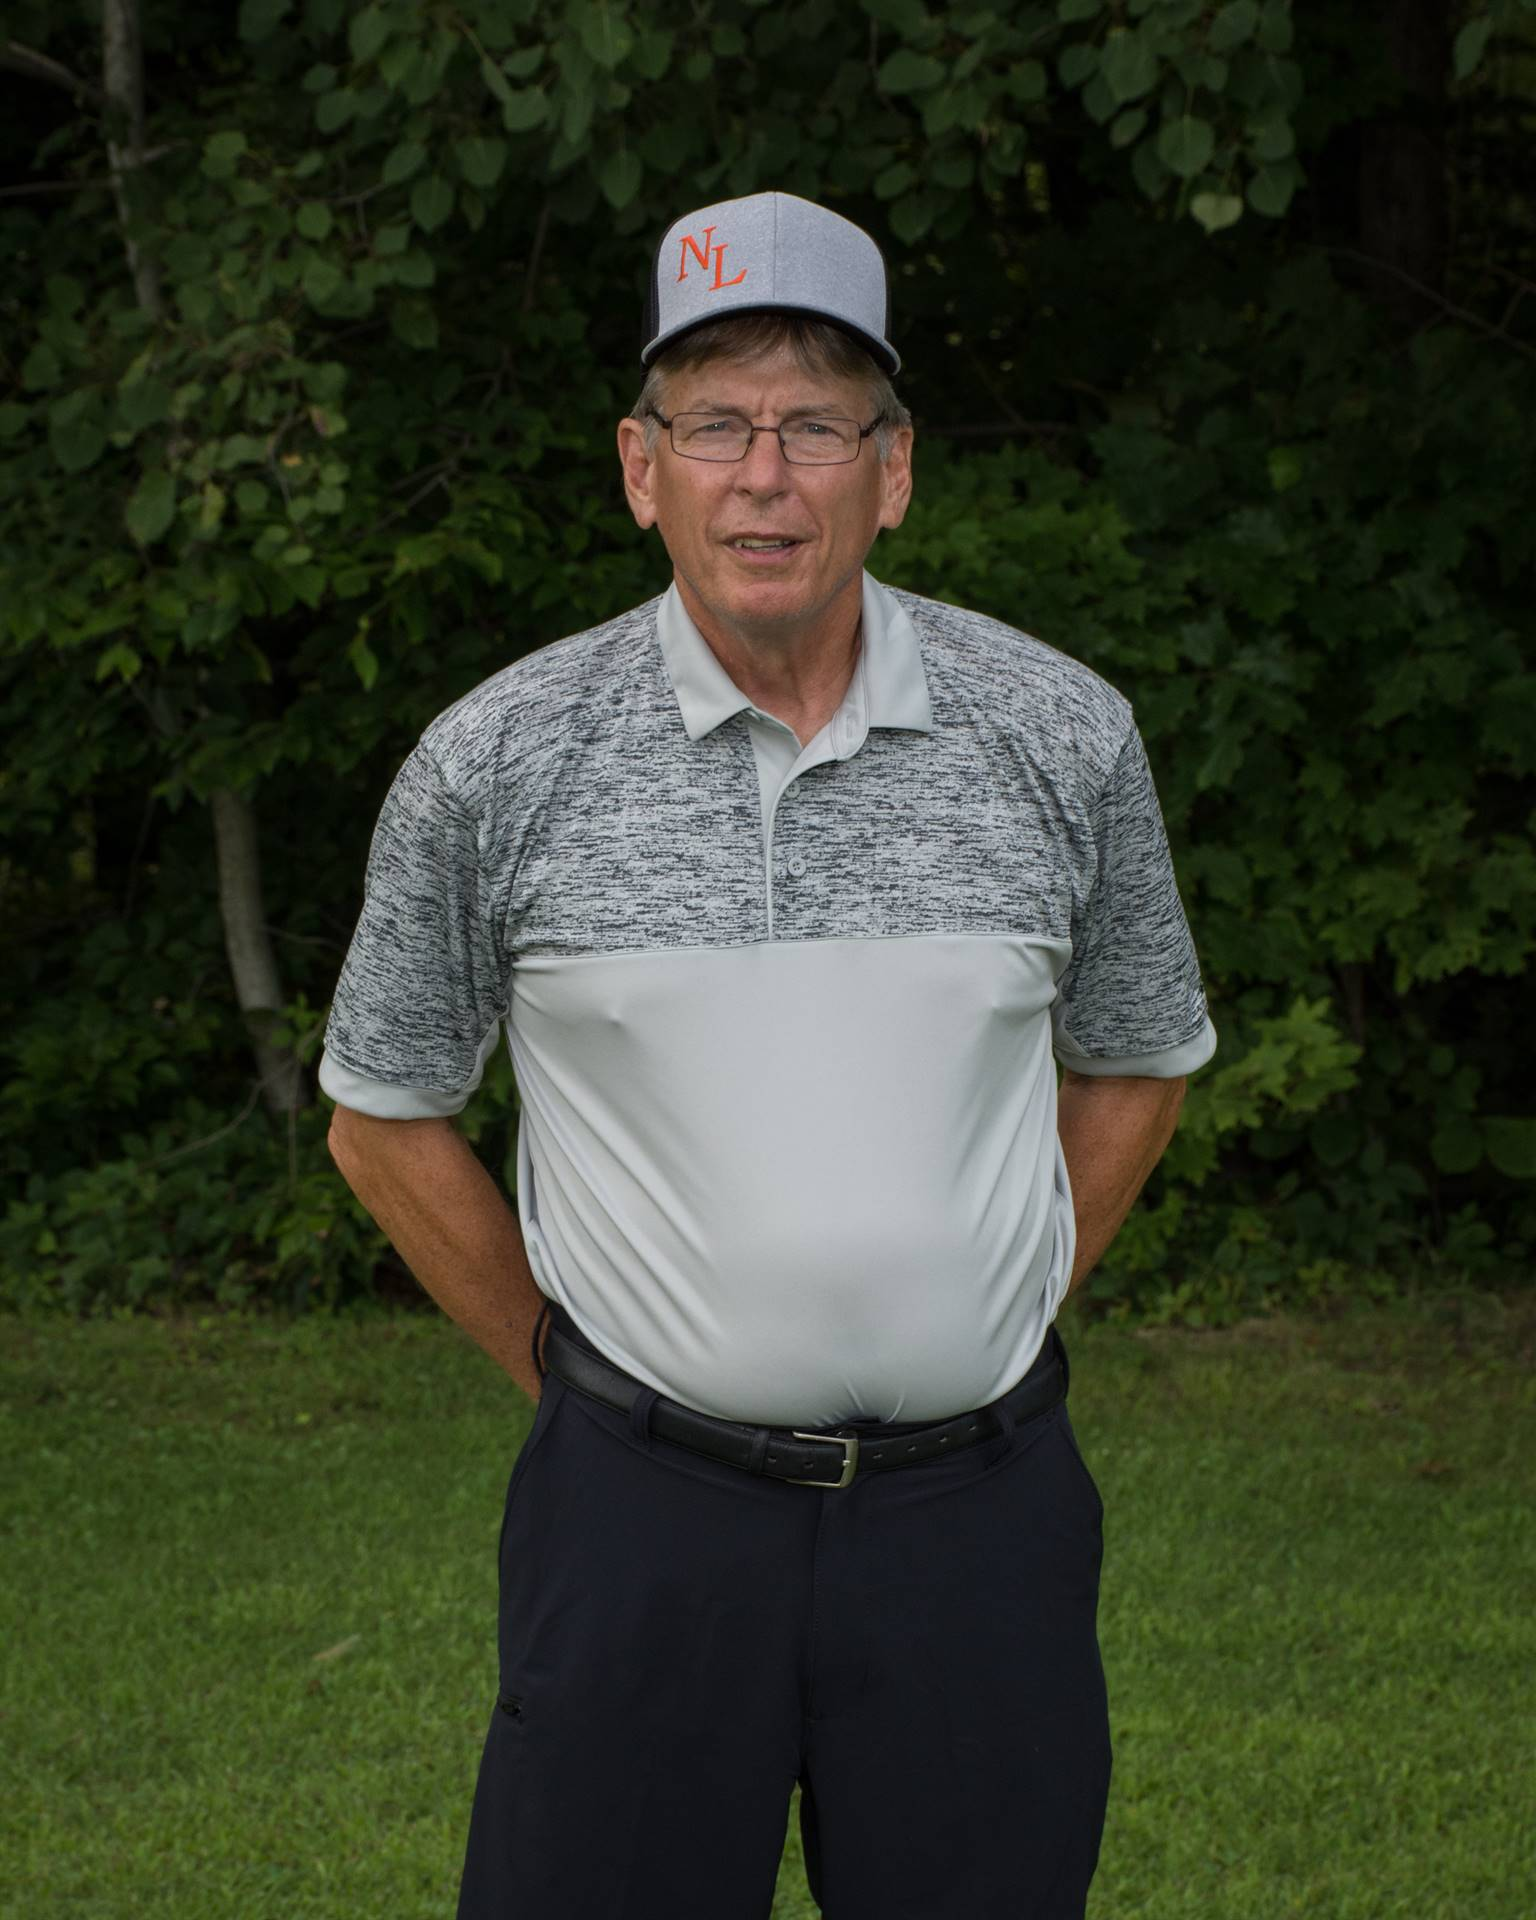 2018 Golf Coach - Tim O'Hare